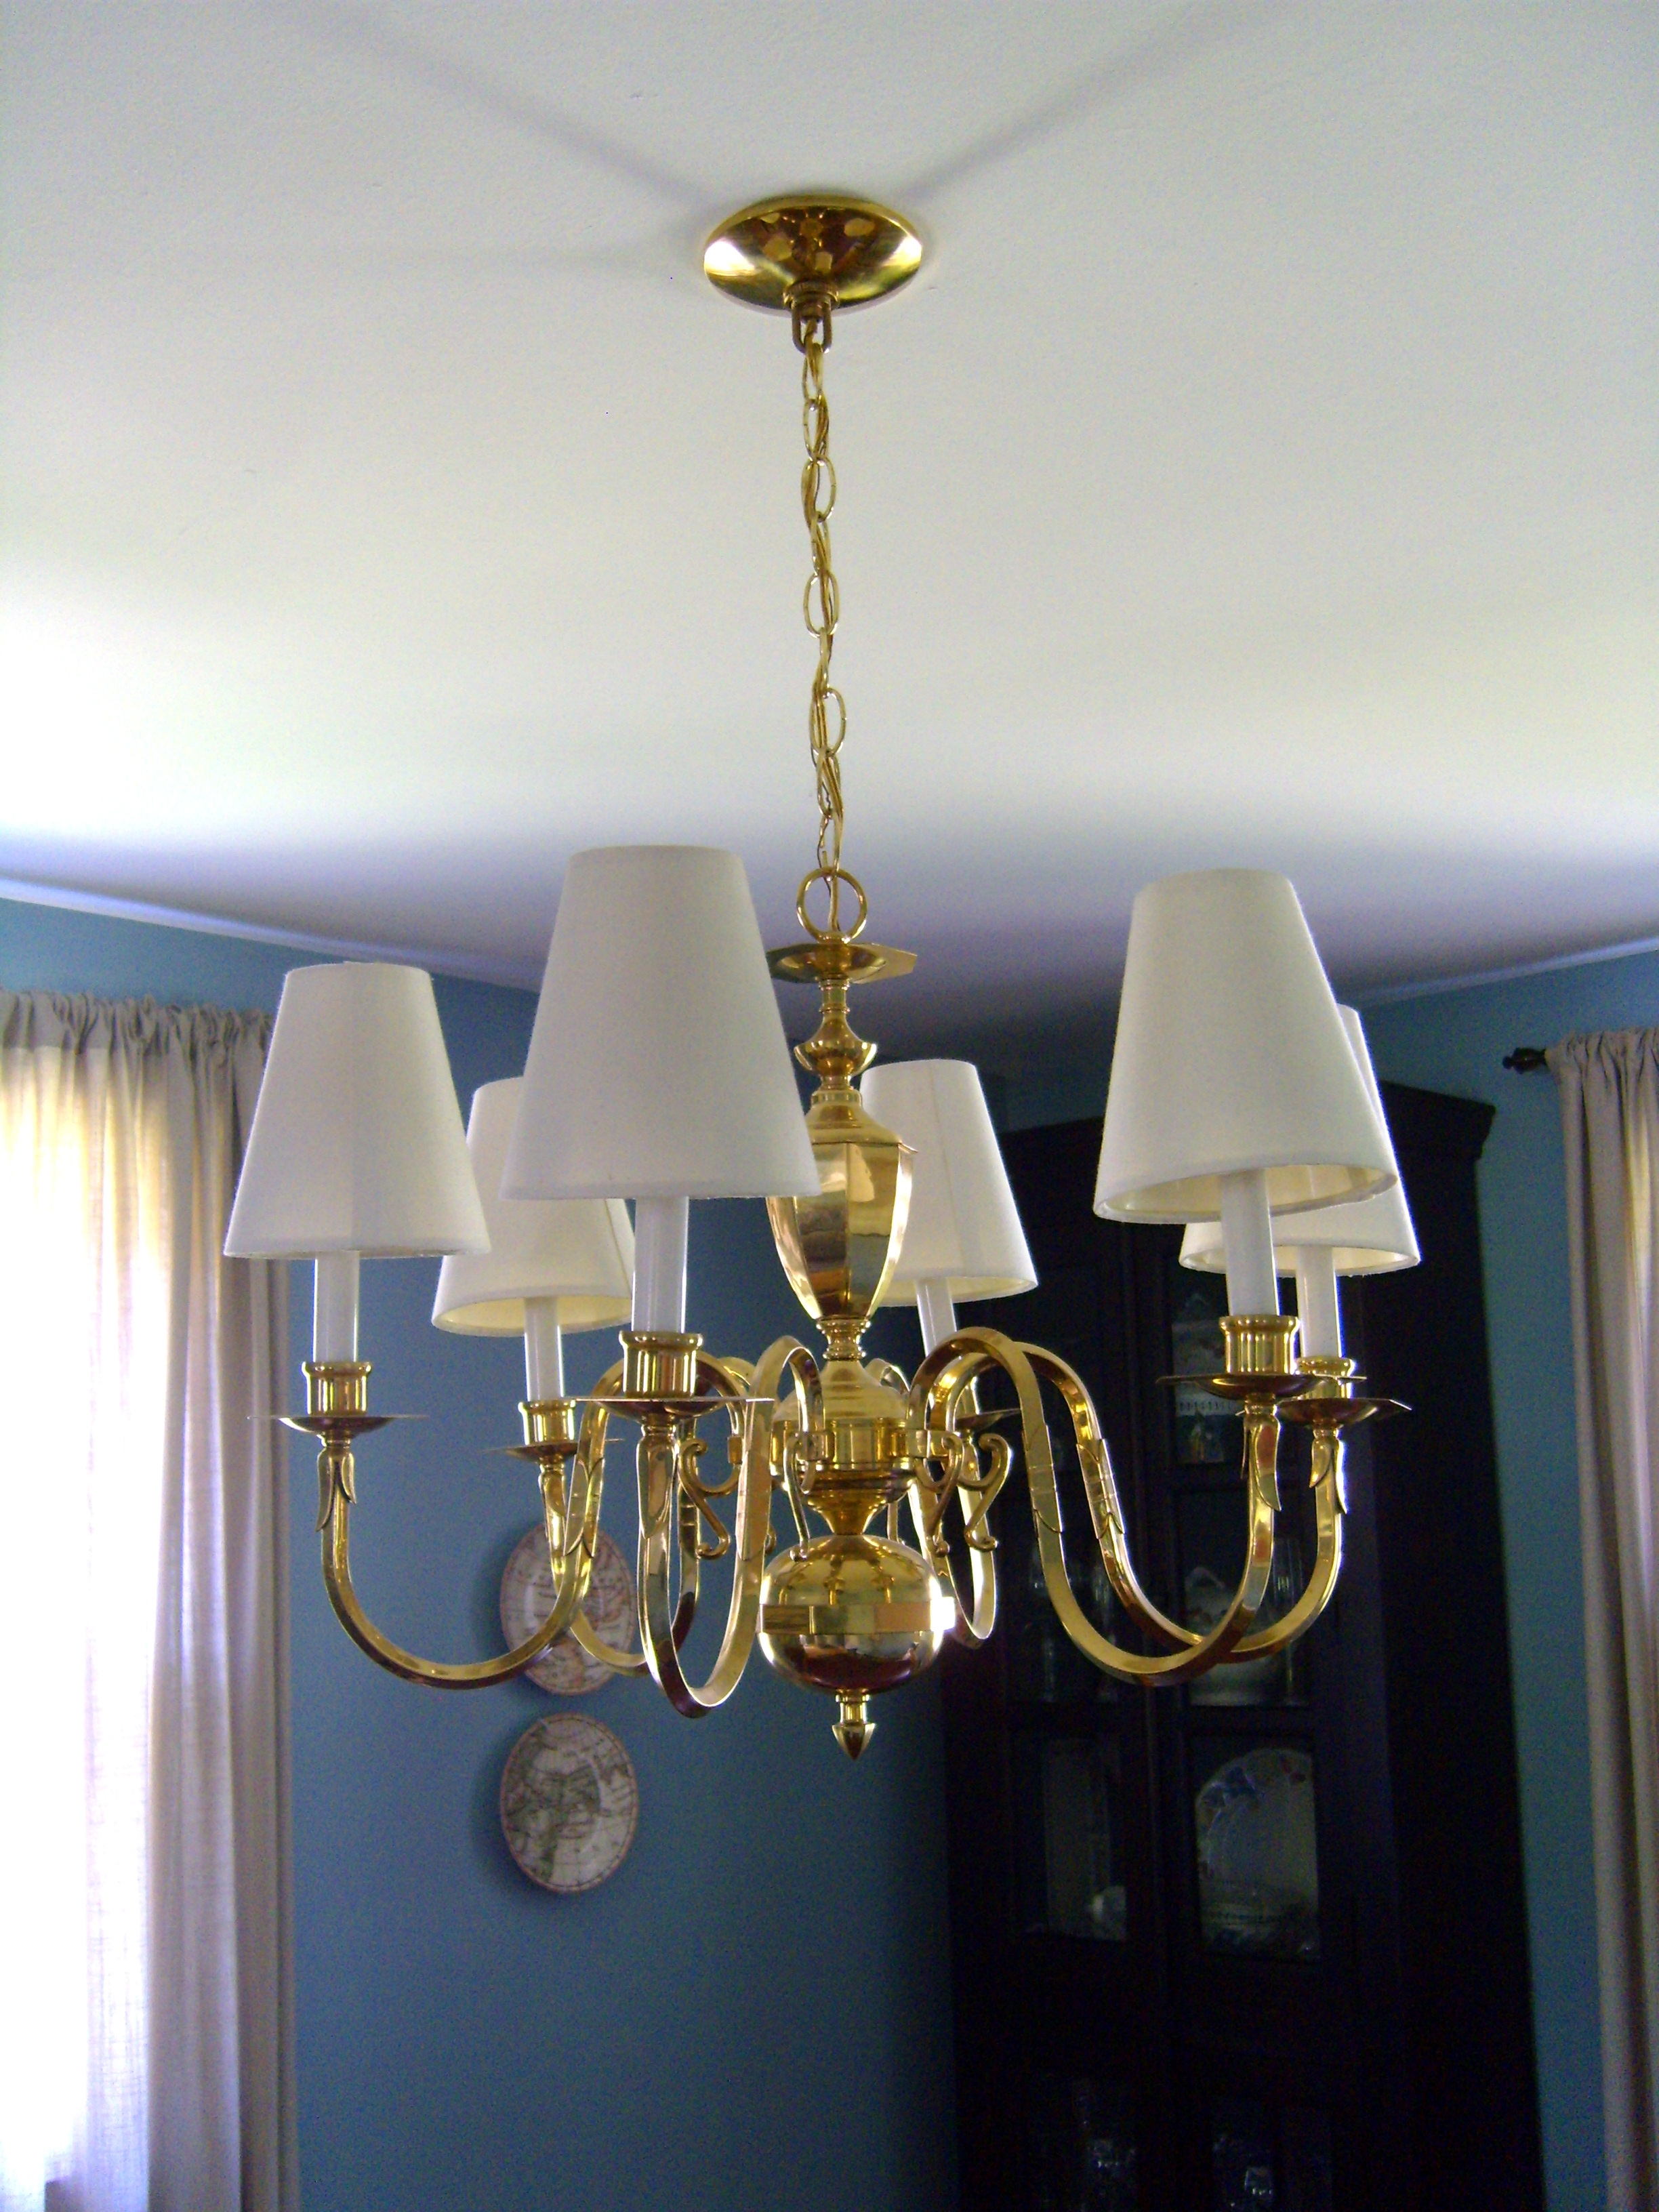 Furniture : Small Drum Lamp Shades Chandelier Saving Space Mini Throughout Trendy Chandelier Light Shades (View 14 of 20)